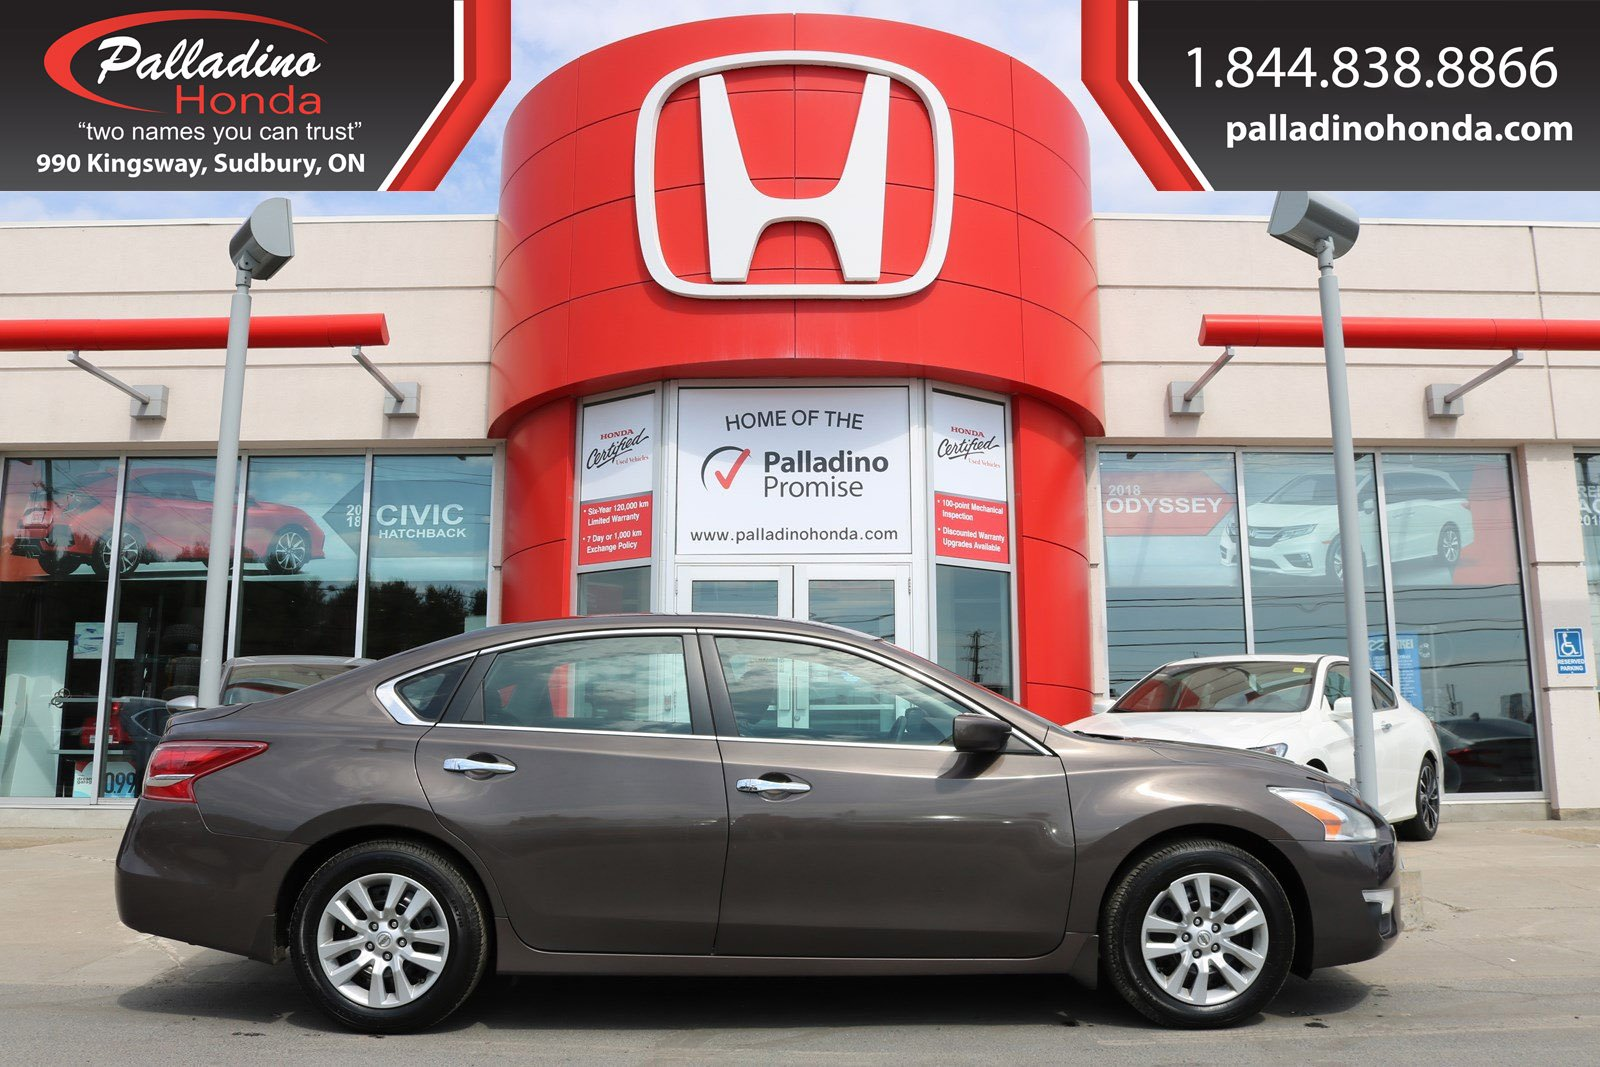 Pre-Owned 2013 Nissan Altima CERTIFIED - GREAT FIRST VEHICLE